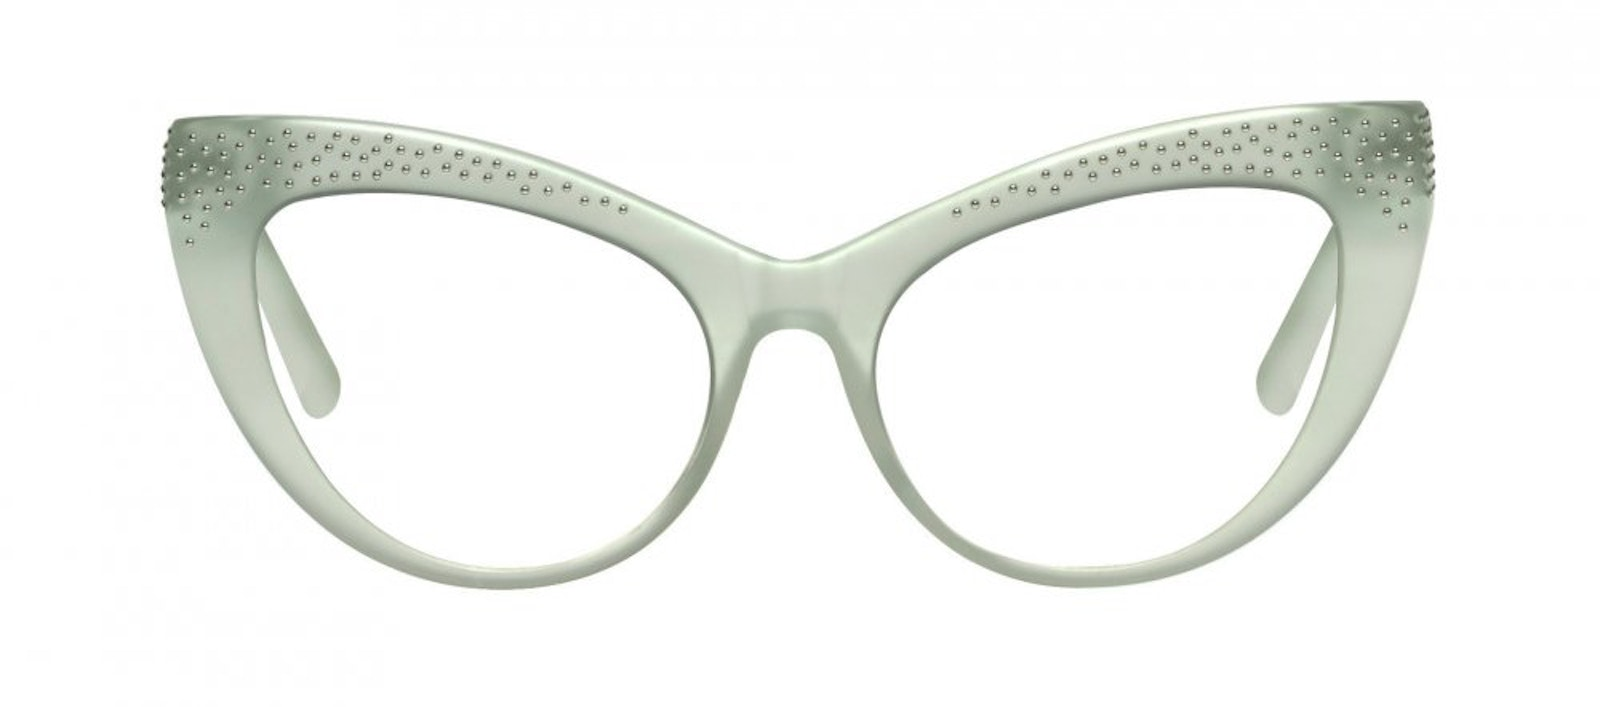 Affordable Fashion Glasses Cat Eye Daring Cateye Eyeglasses Women Keiko Miku Mint Front